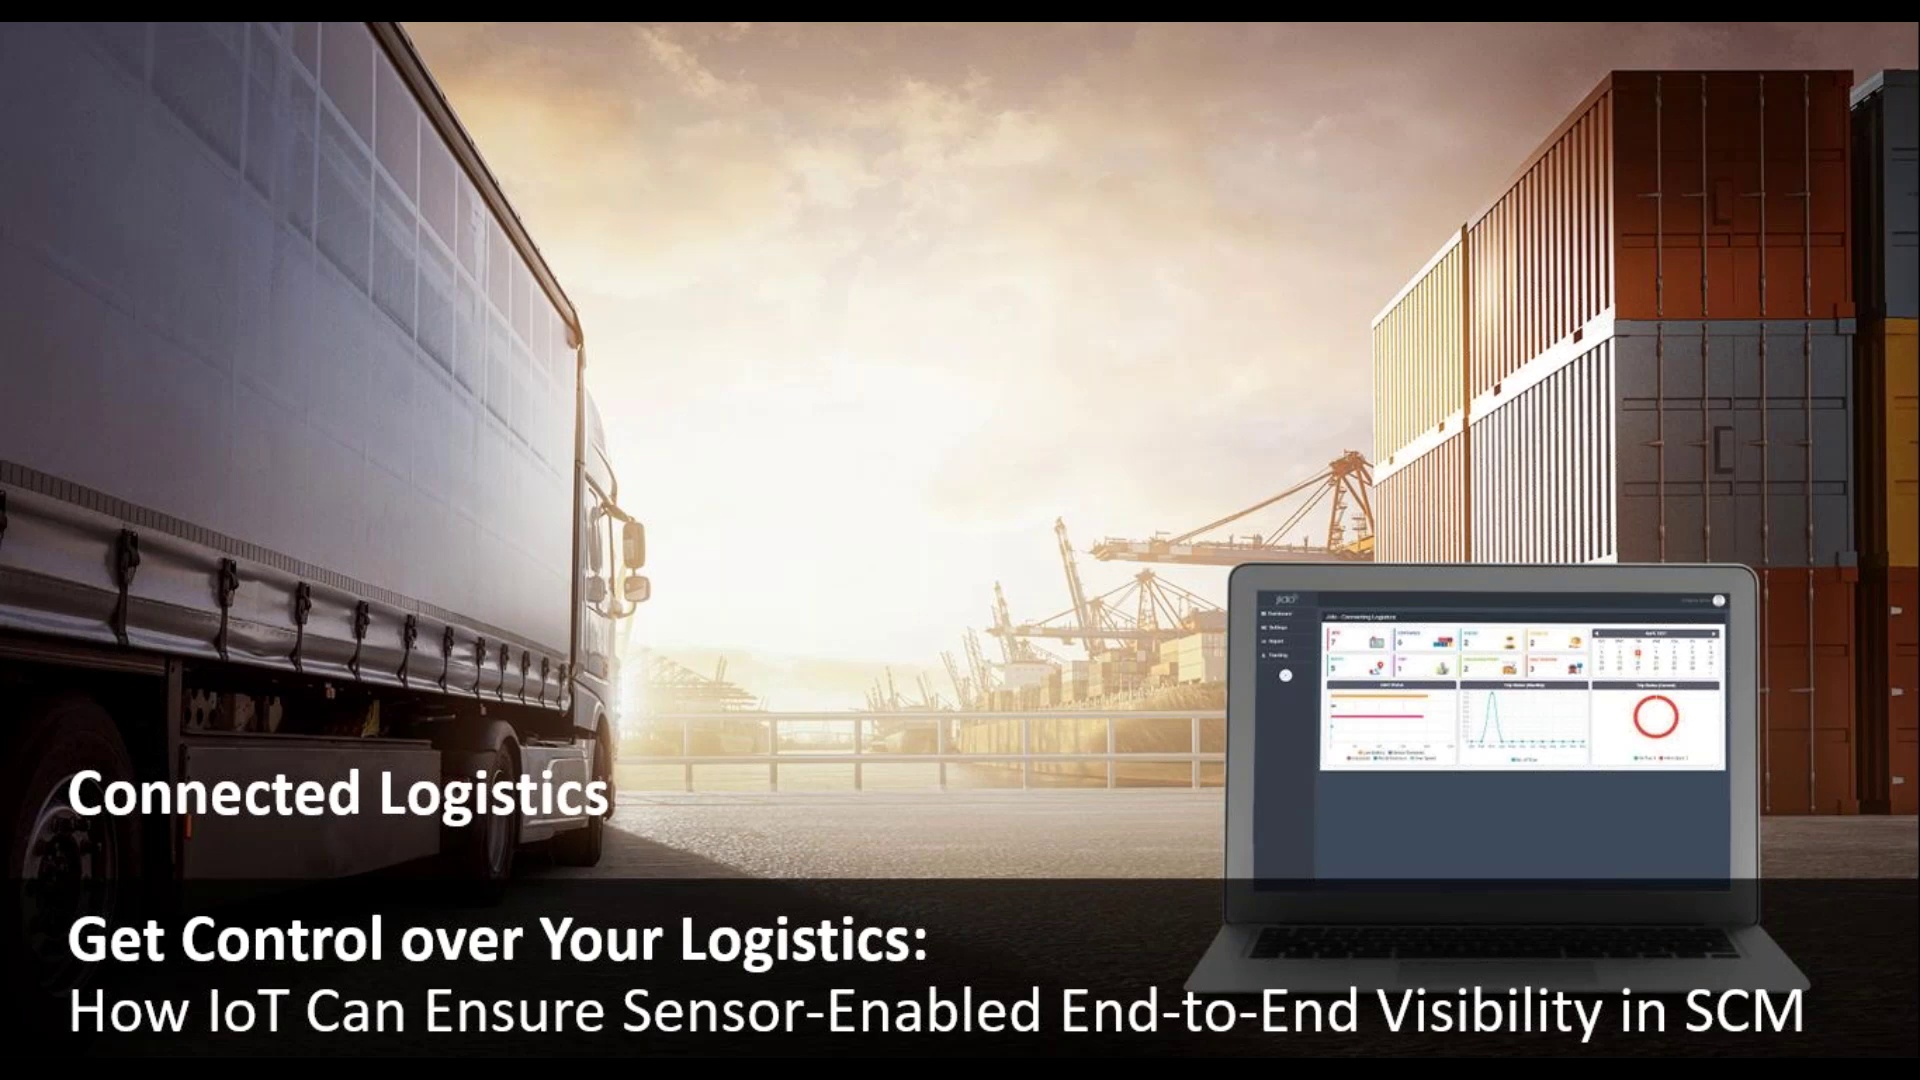 ow IoT Can Ensure Sensor-Enabled End-to-End Visibility in SCM